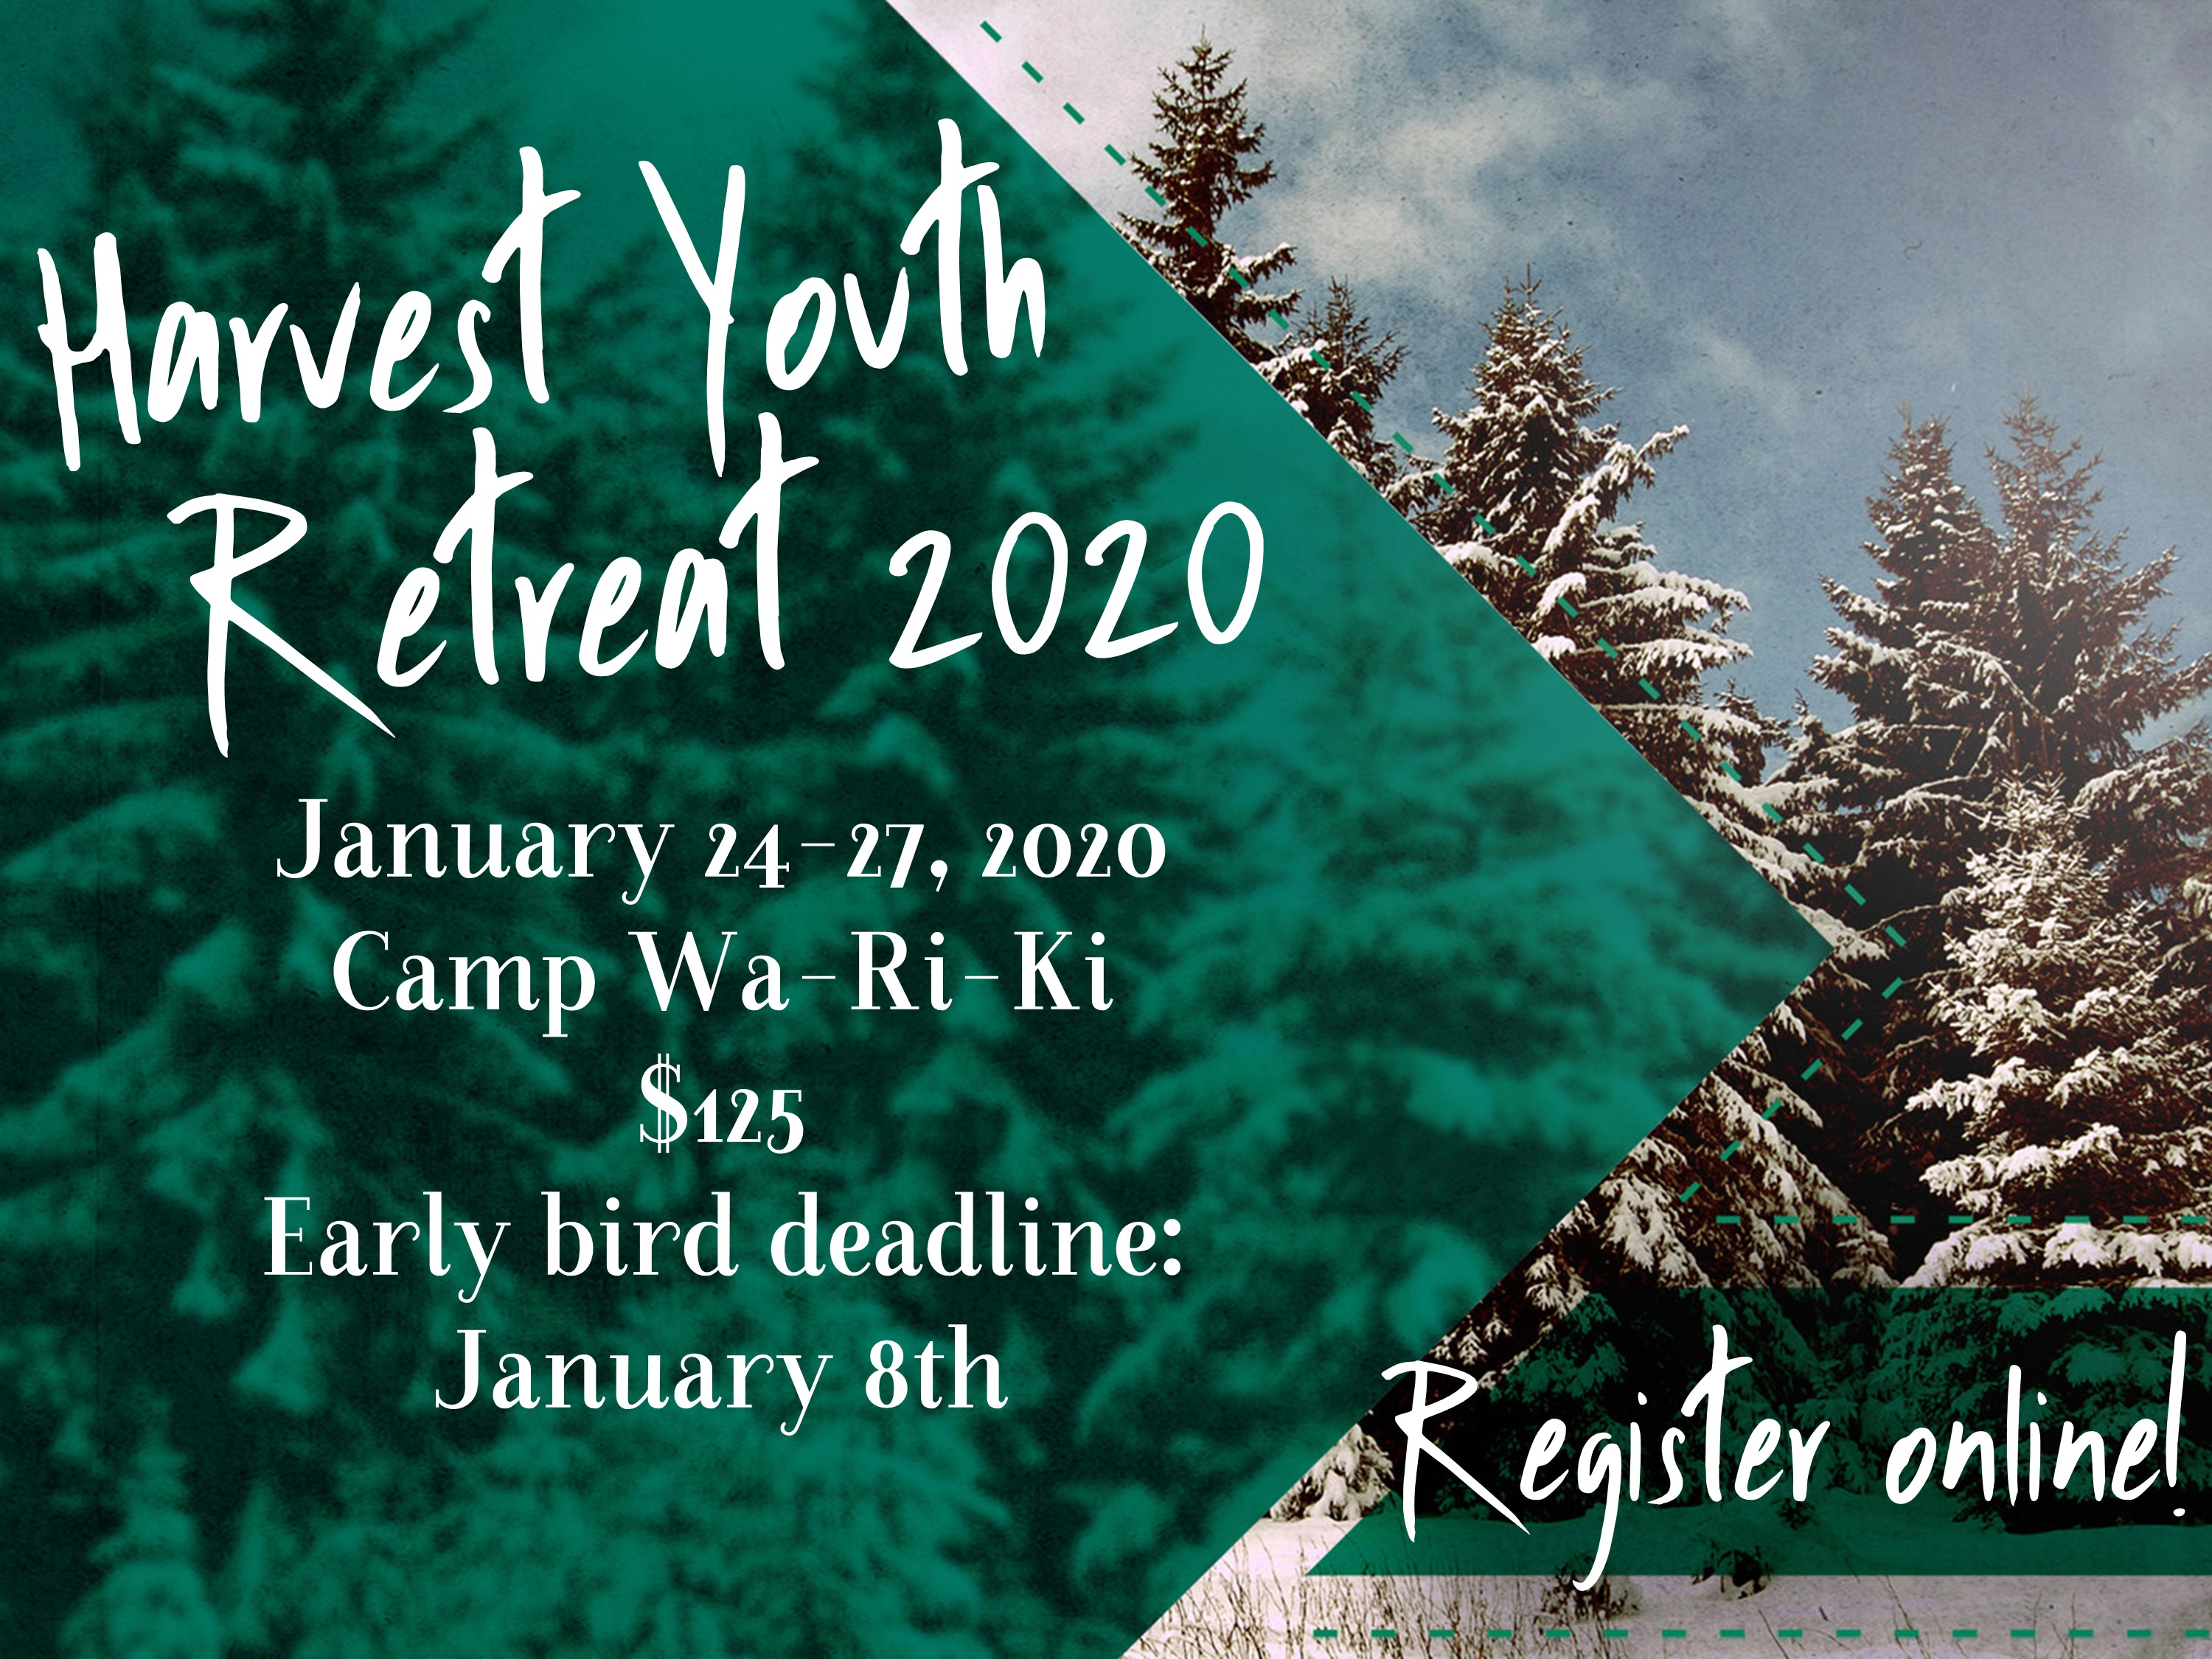 Youth Winter retreat 2020 image